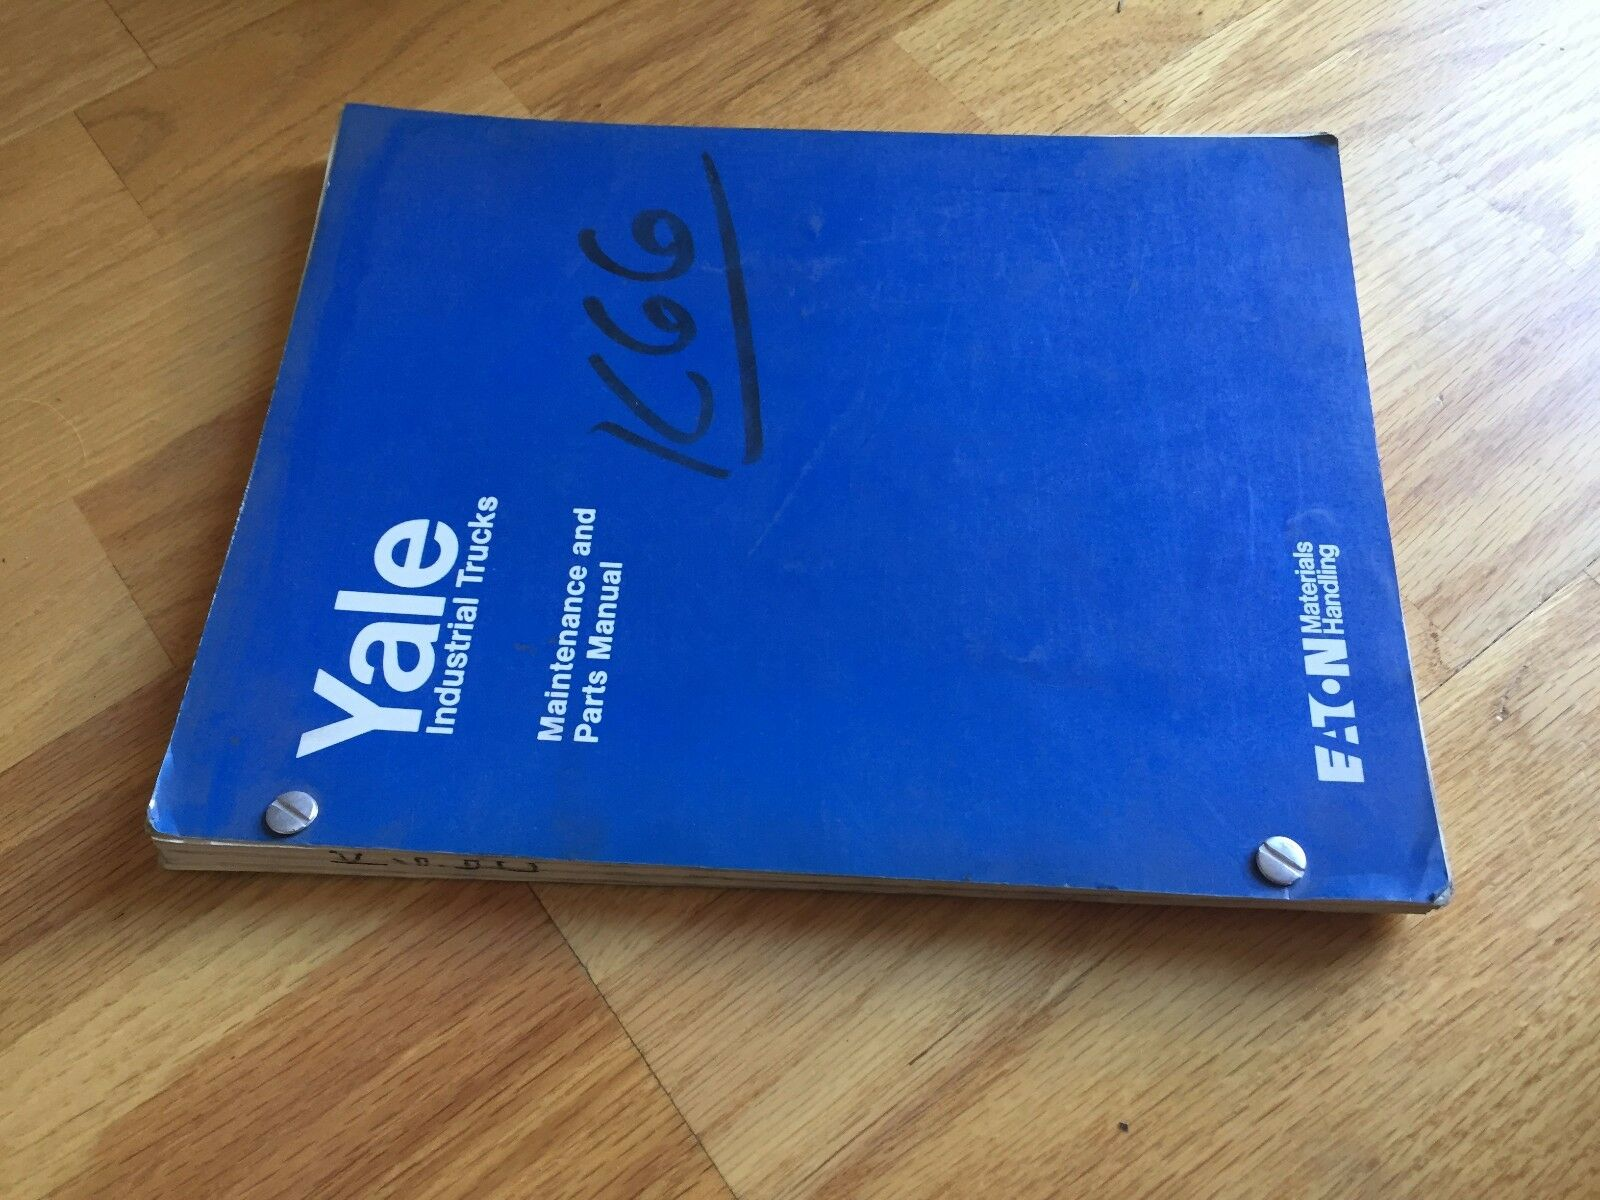 Yale K66c 66 Electric Forklift Parts Catalog Maintenance Manual Wiring Diagram Truck 1 Of 1only Available